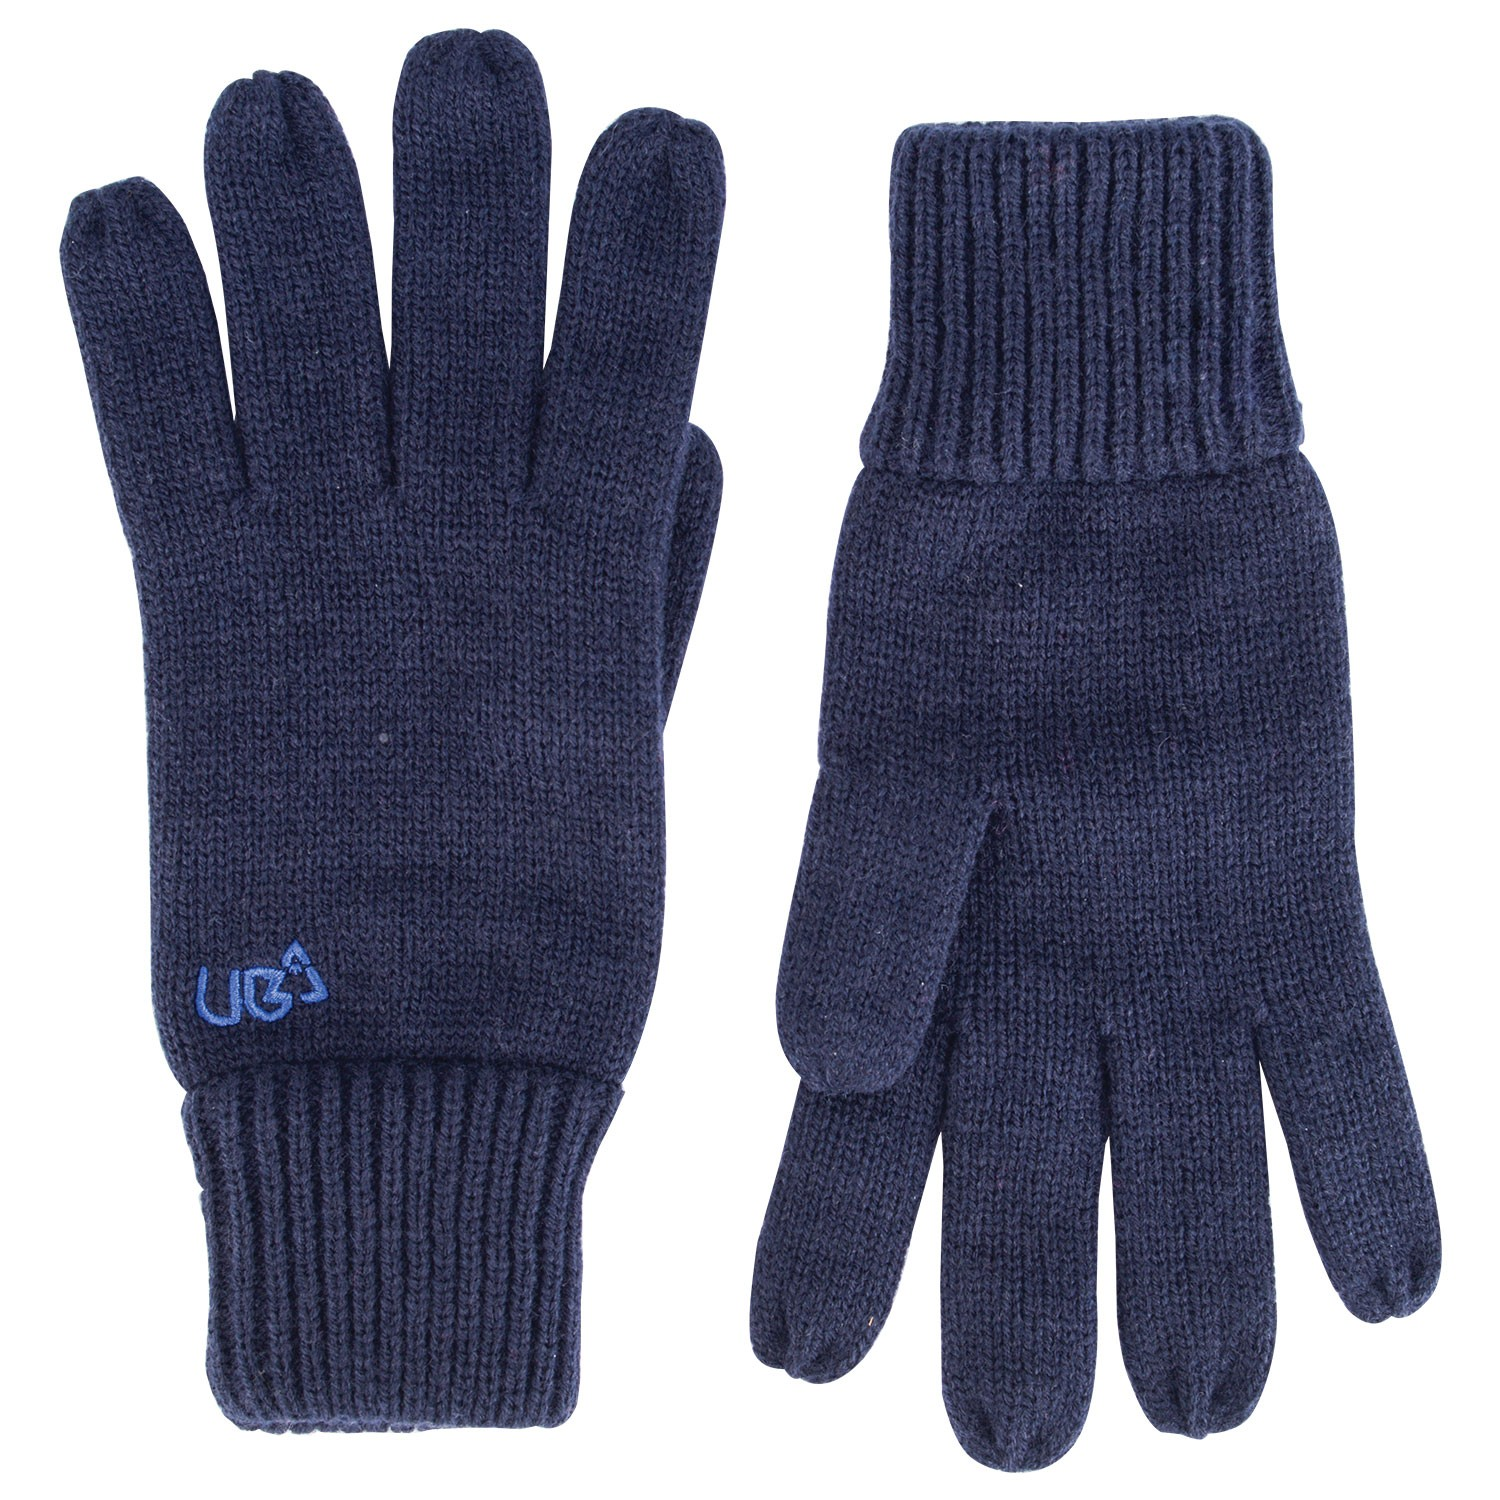 Plain Navy Blue Gloves Drifter- Free Delivery Over £20